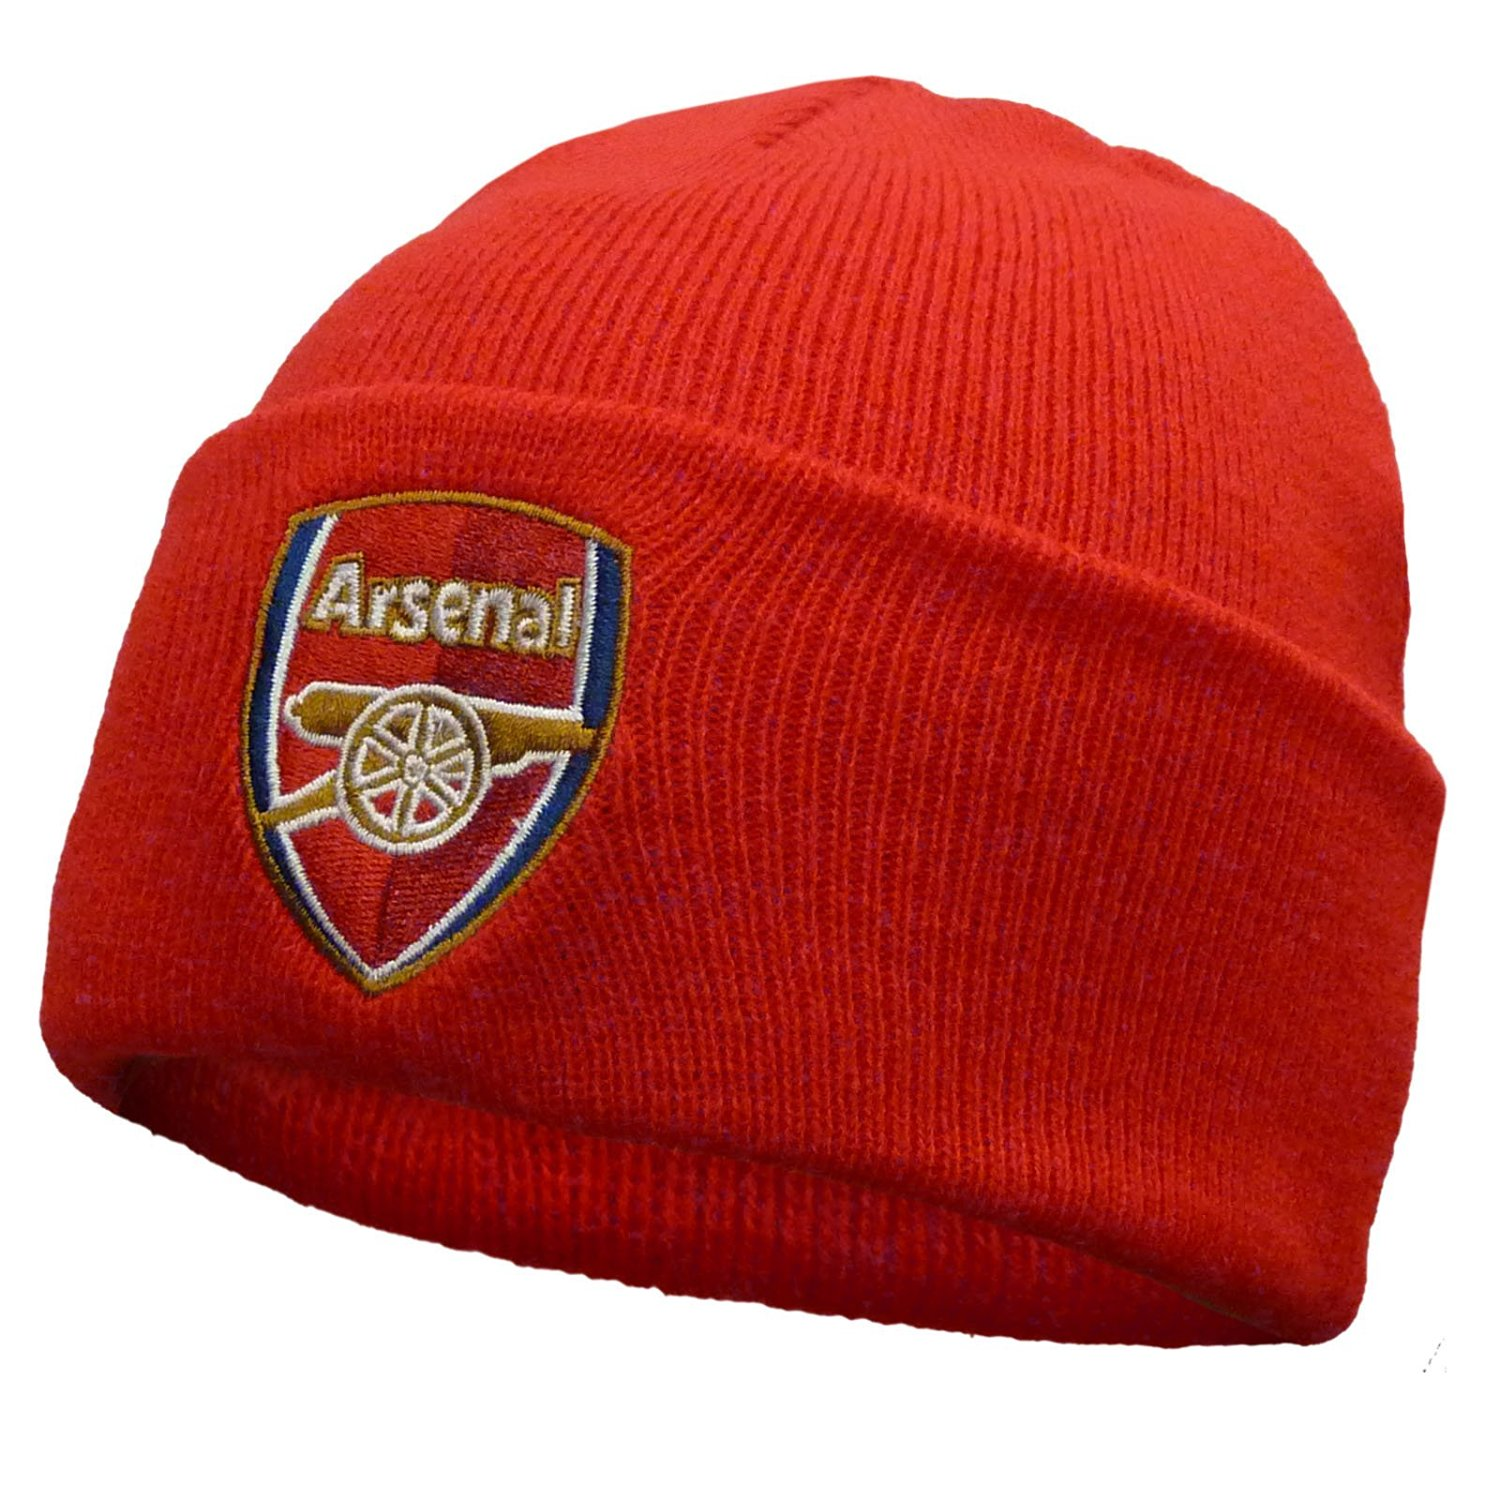 3479ef03f42 Get Quotations · Arsenal Football Club Official Soccer Gift Knitted Bronx  Beanie Hat